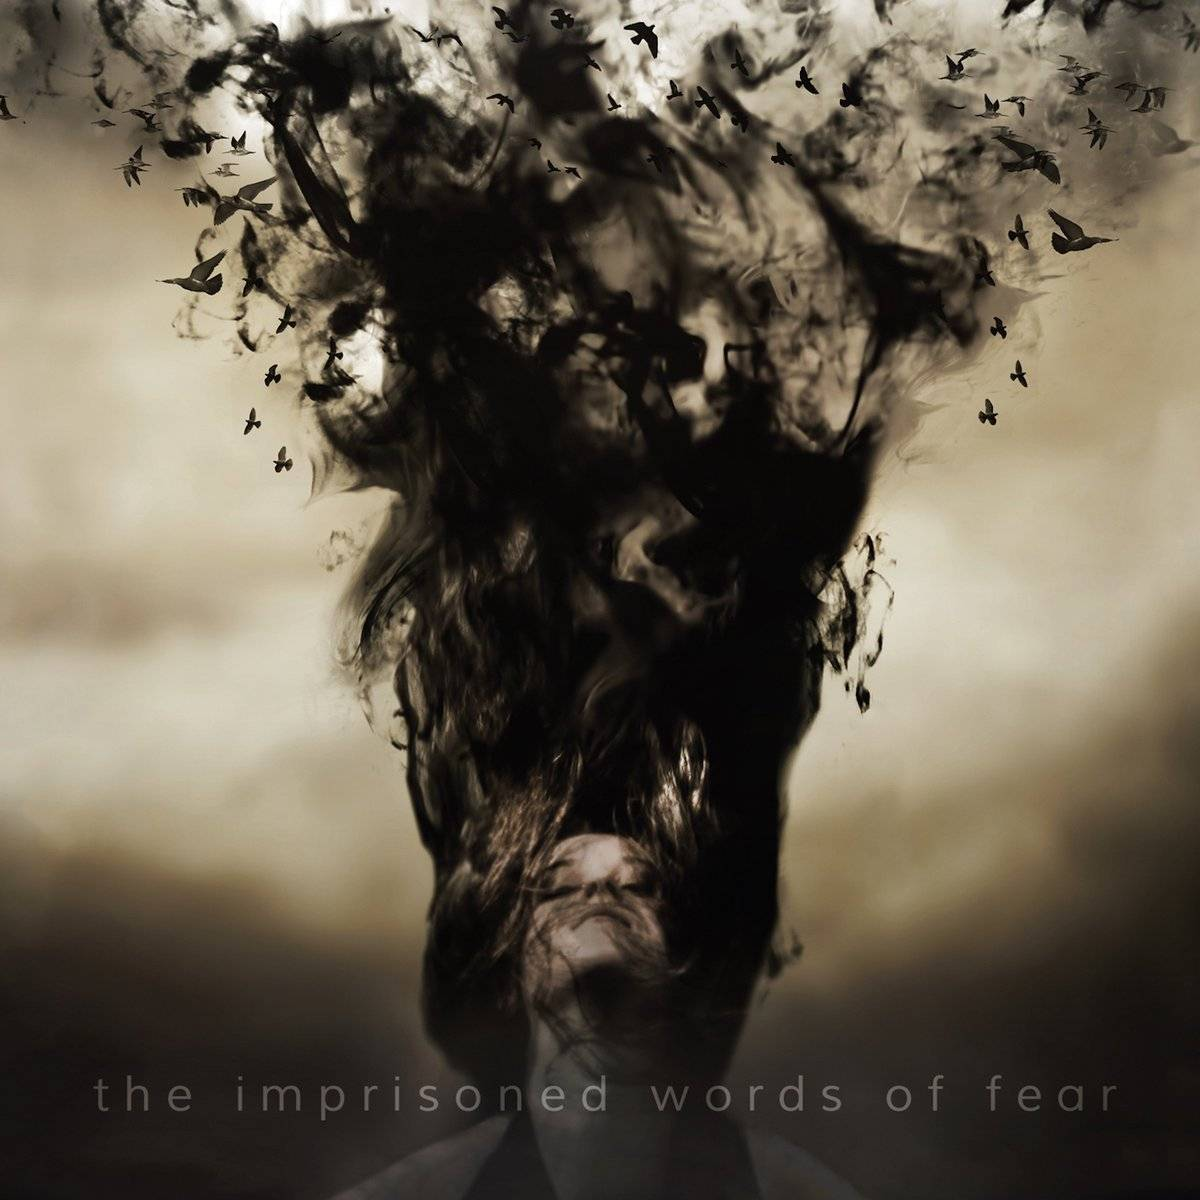 Verbal Delirium – The Imprisoned Words of Fear